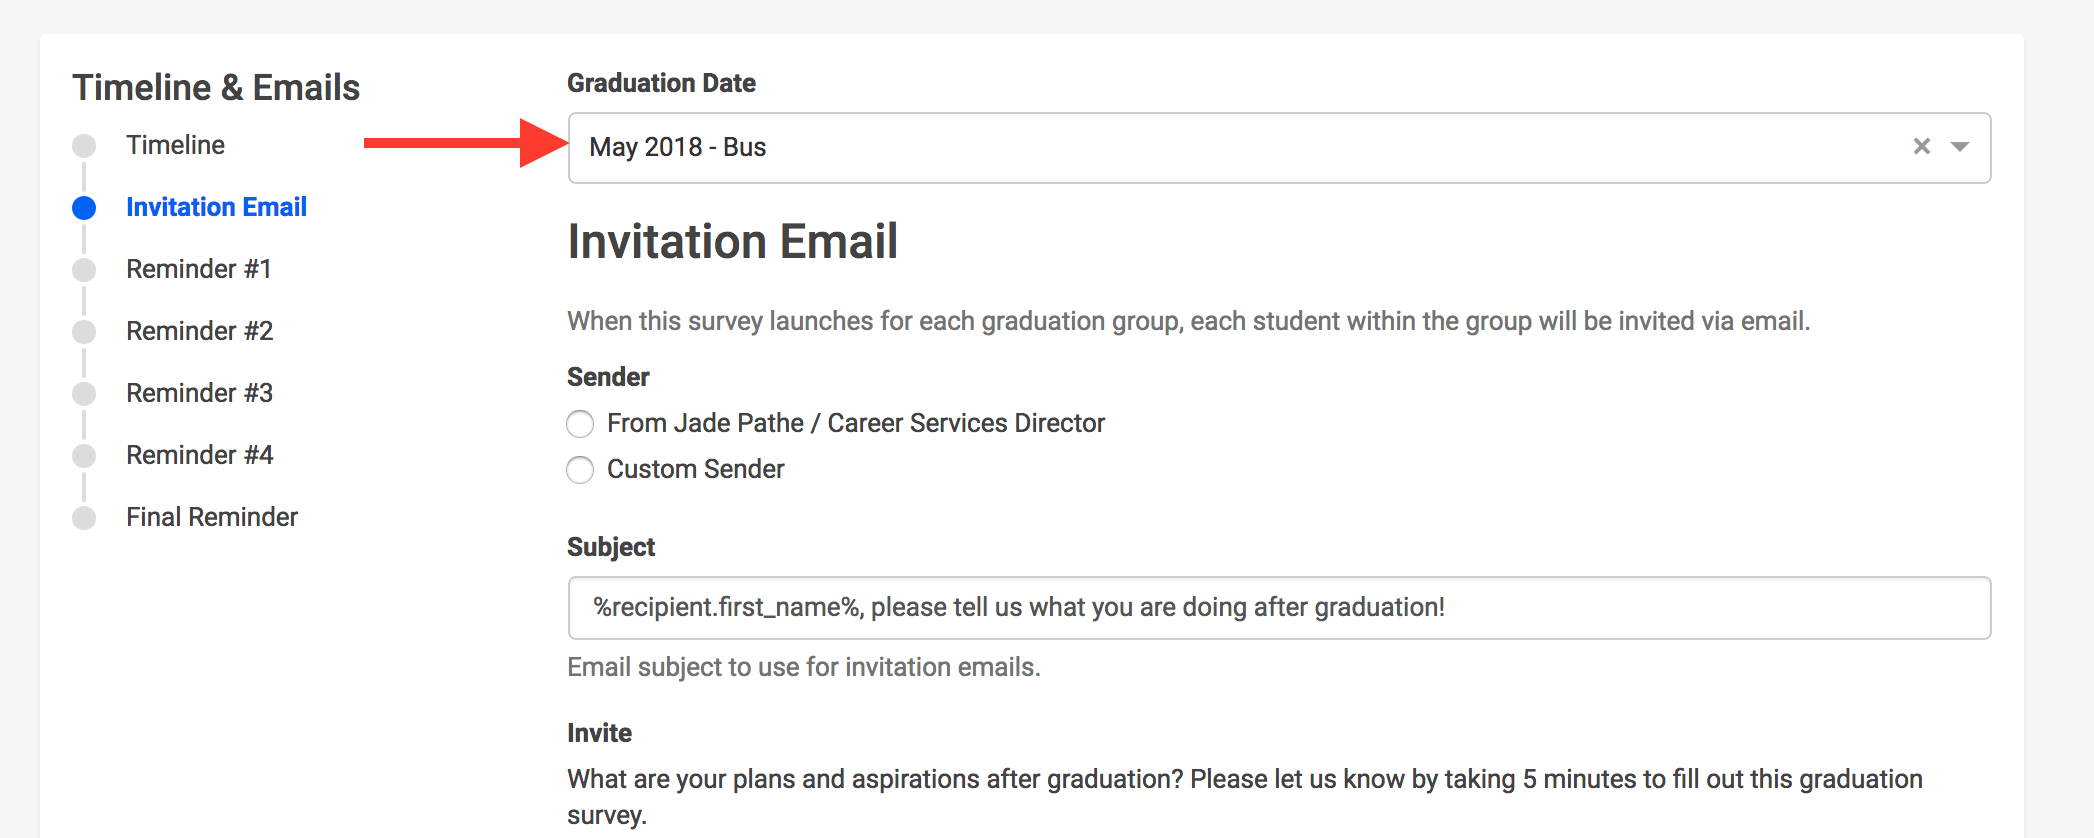 How To Send Custom Invitation And Reminder Emails To Each